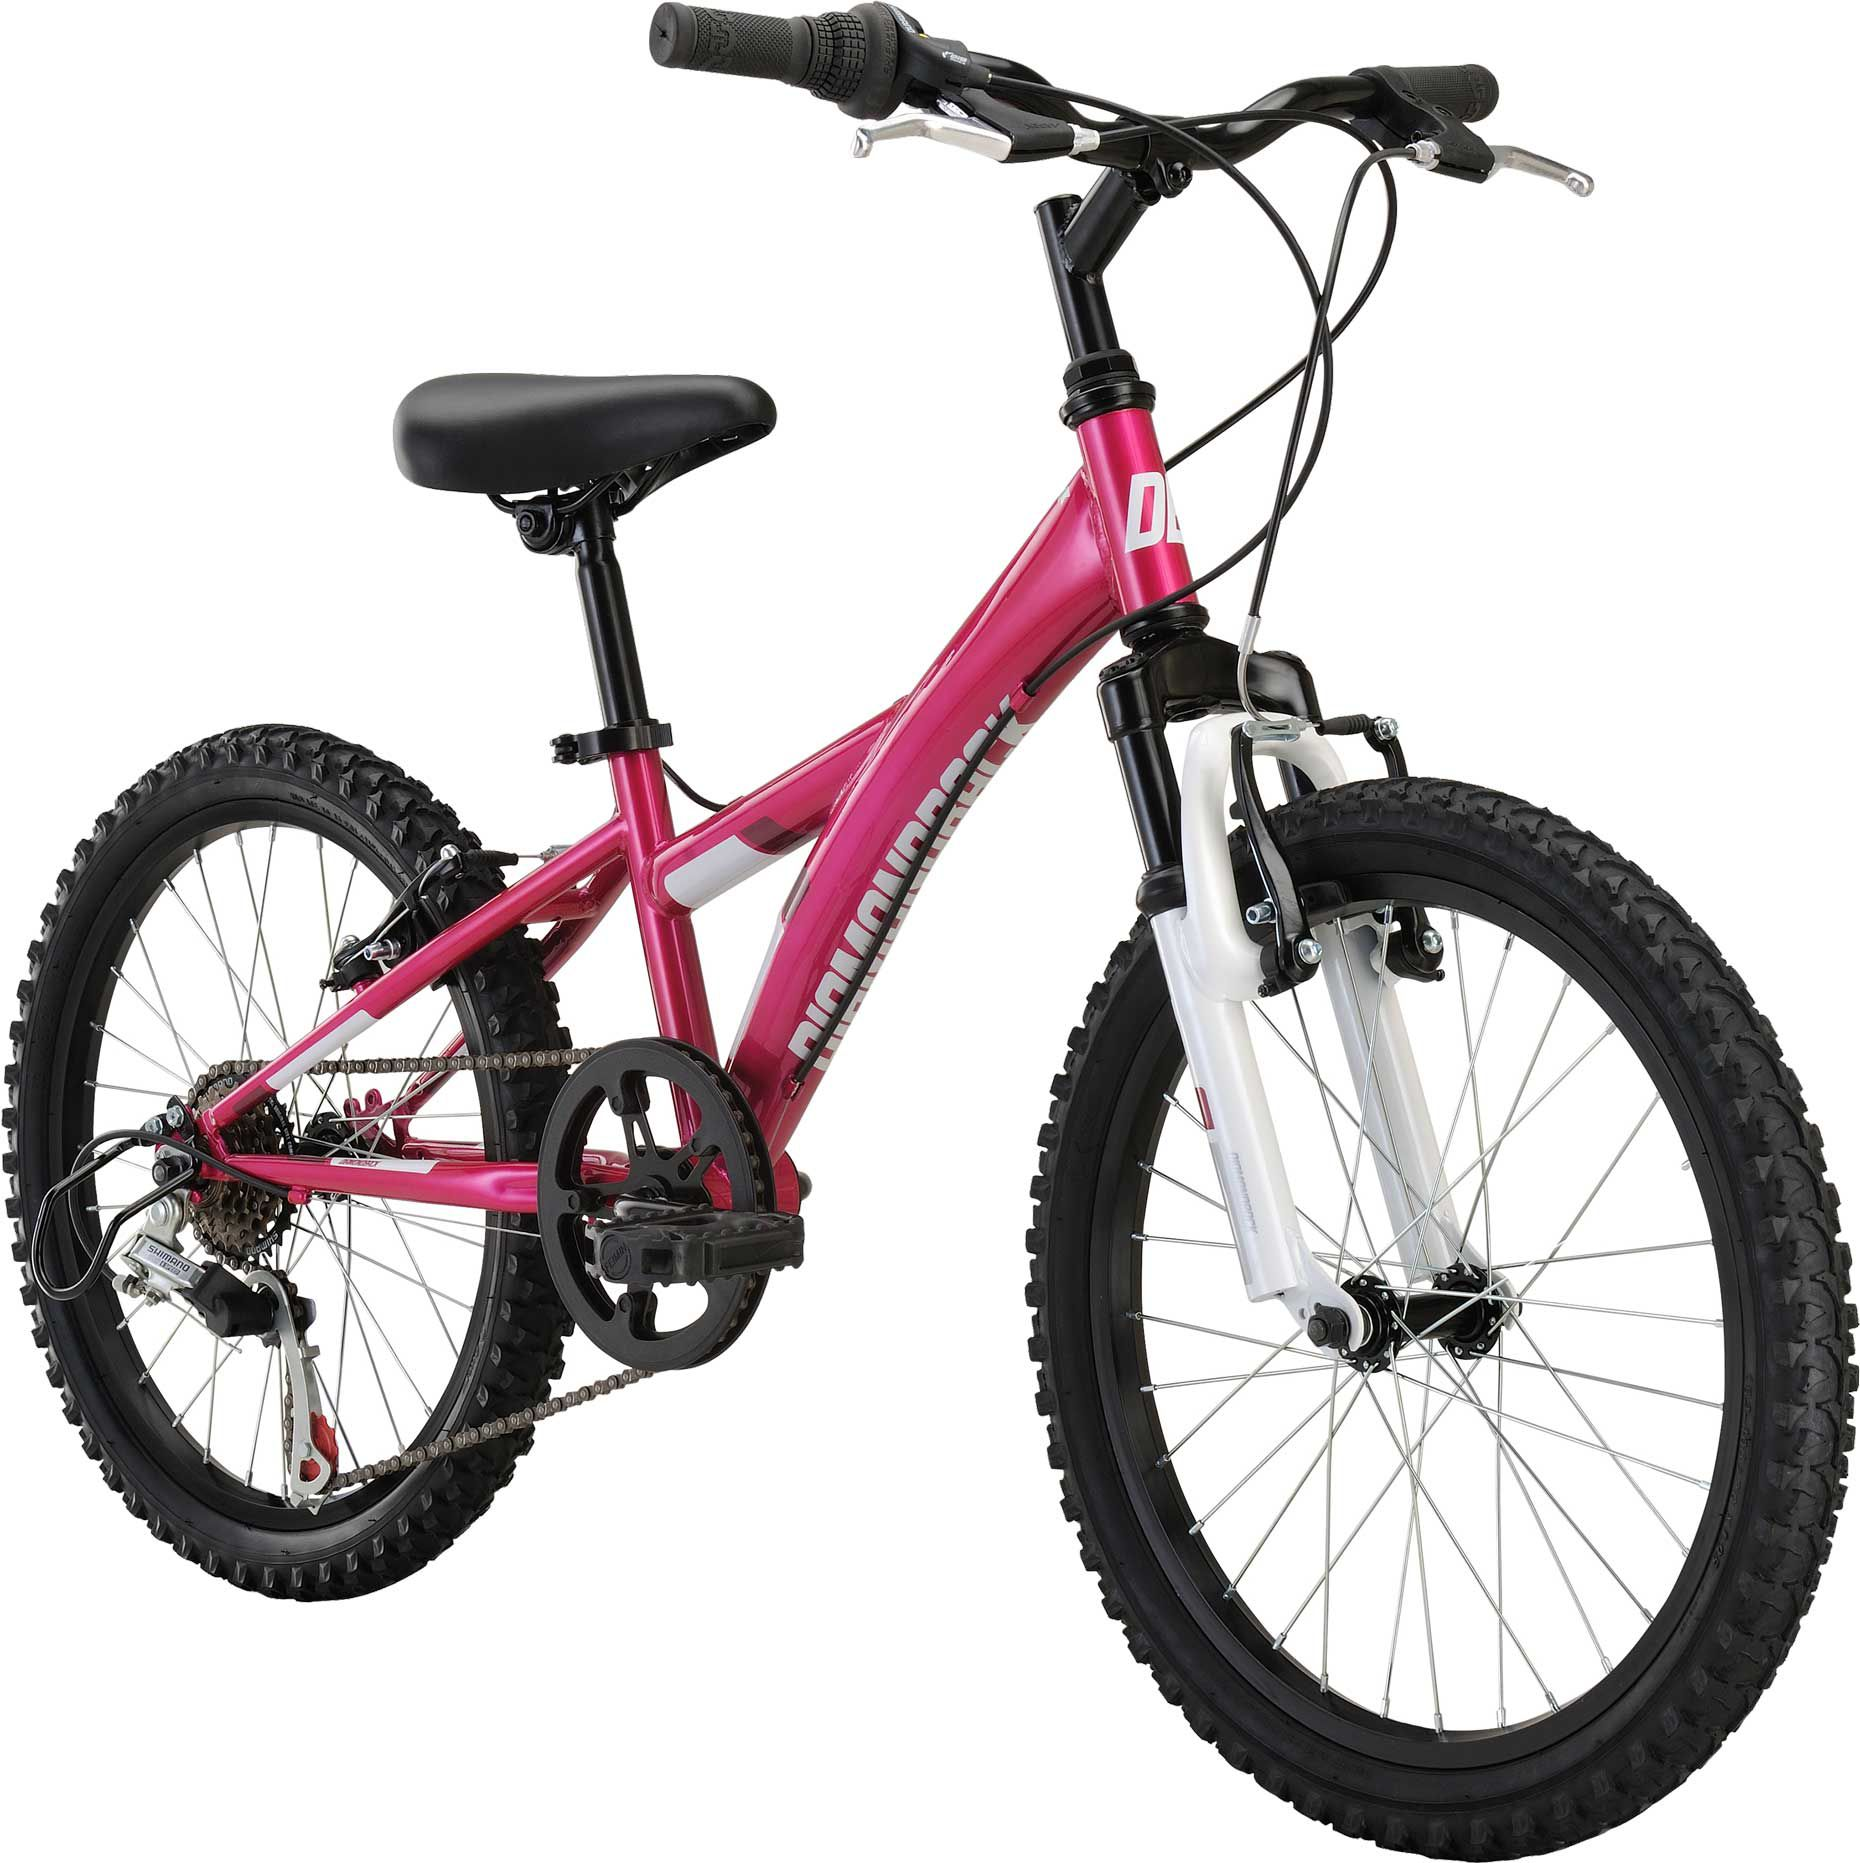 Mountain Bikes For Sale Dick S Sporting Goods